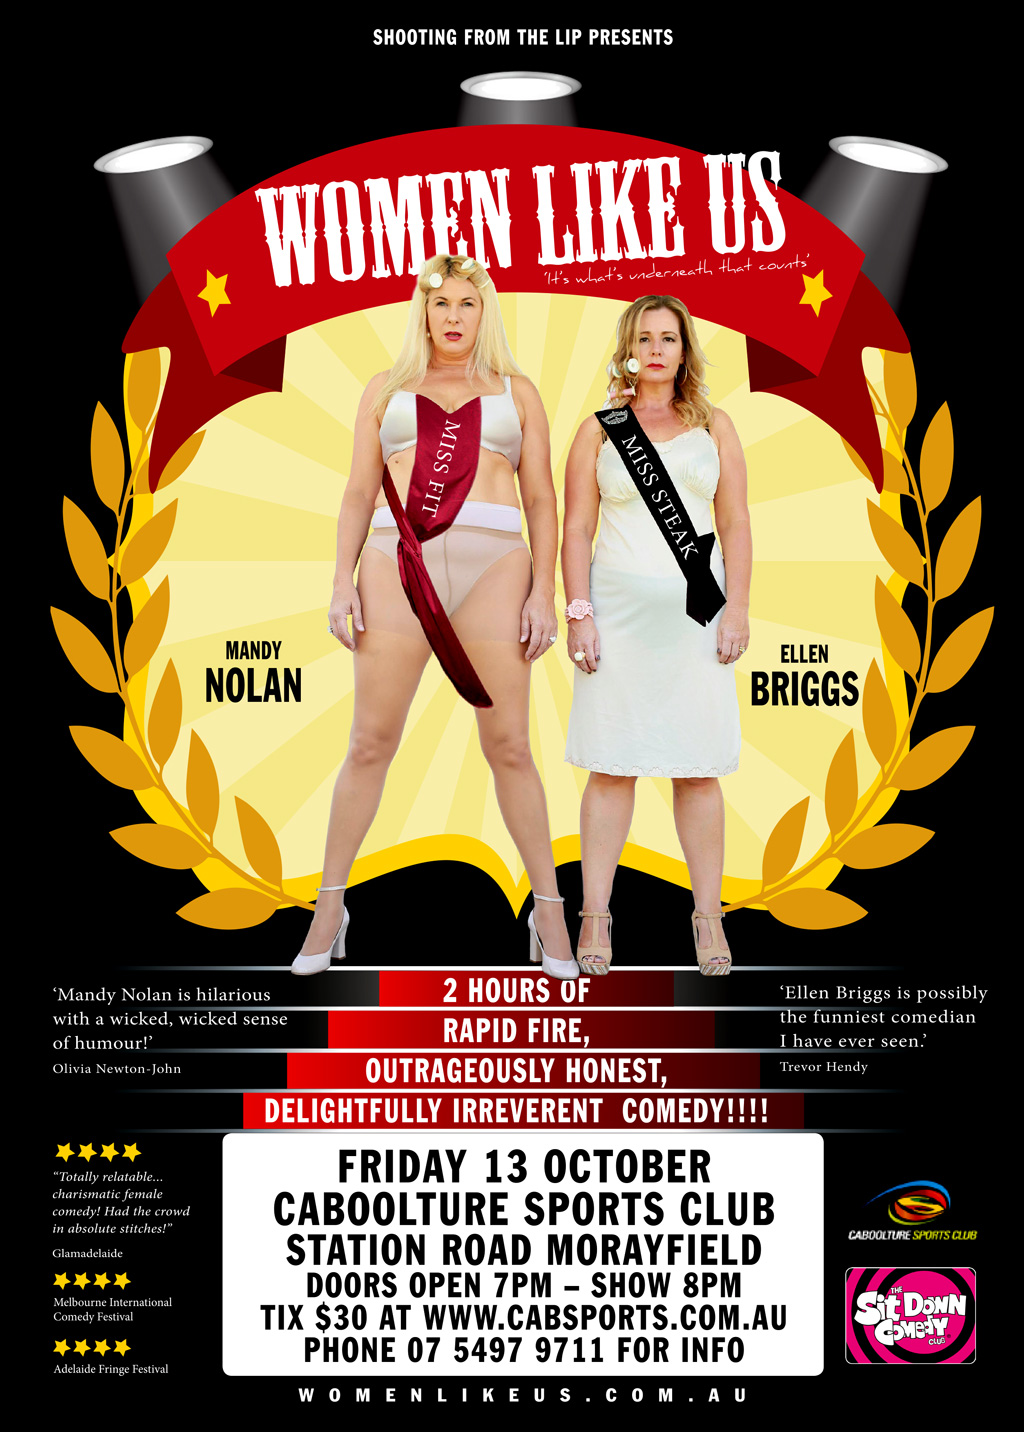 FB-POSTER-CABOOLTURE